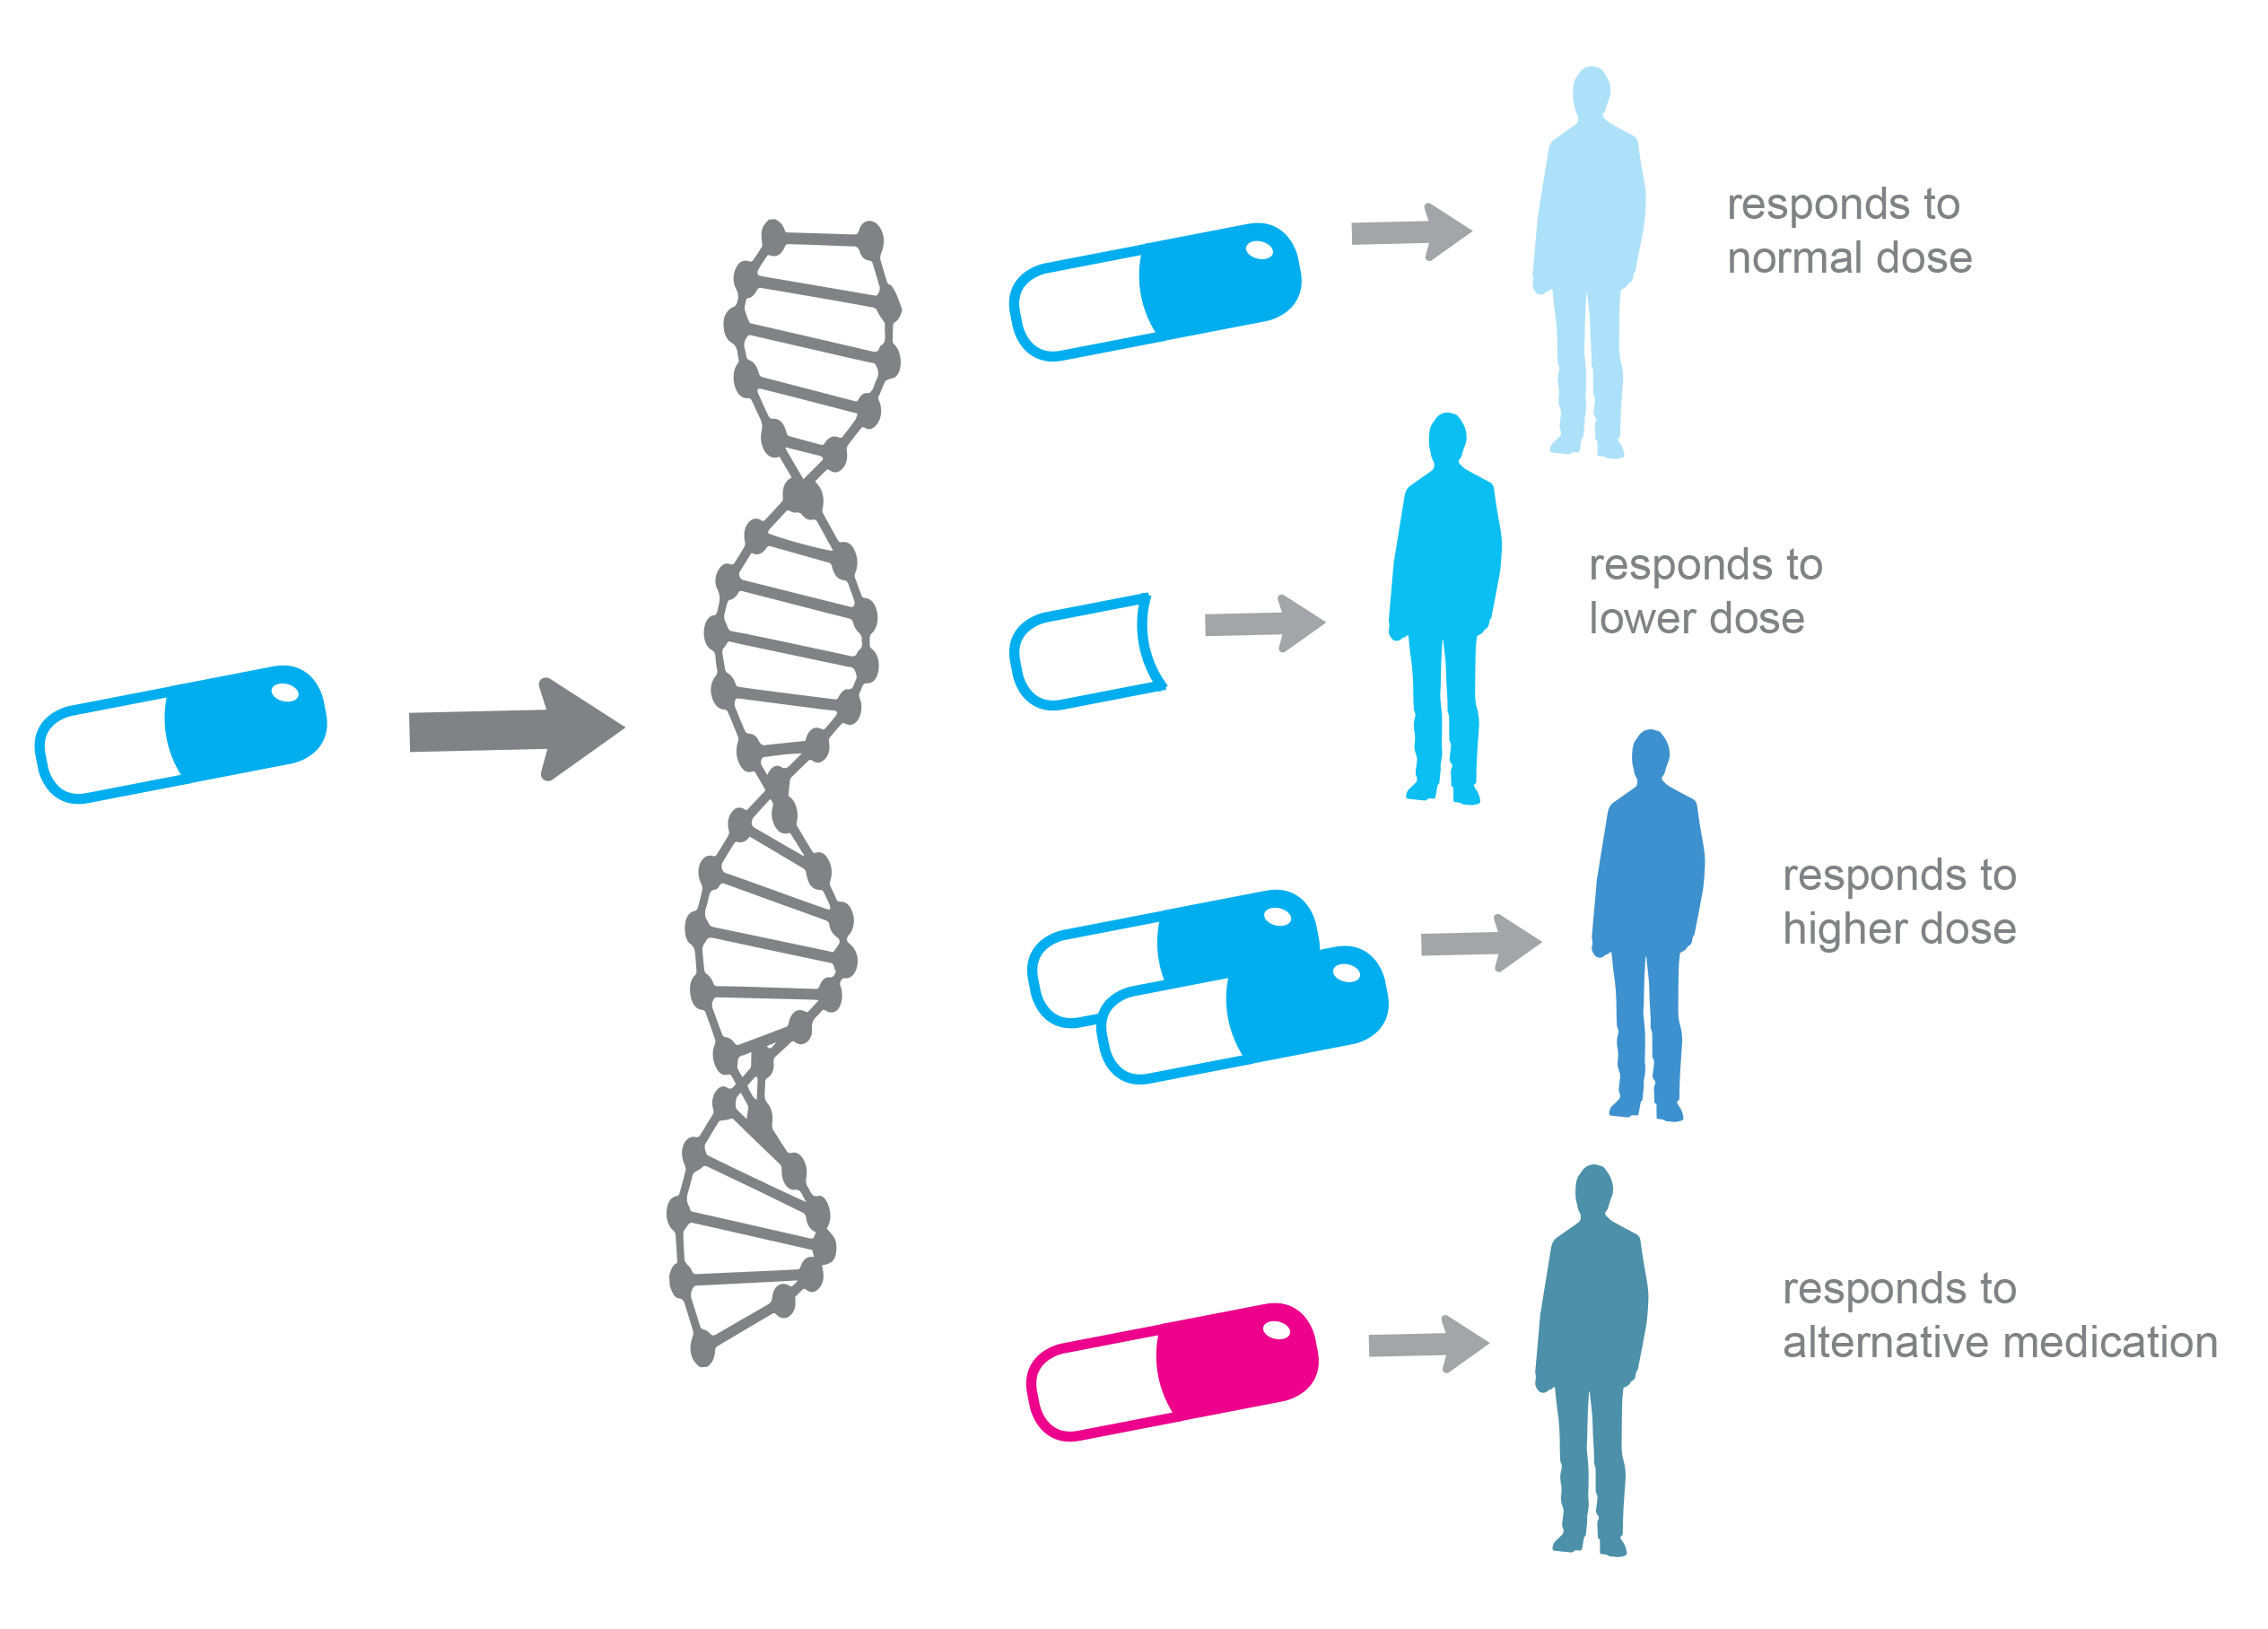 Personalized Medicine and the Practice of Medicine in the 21st Century